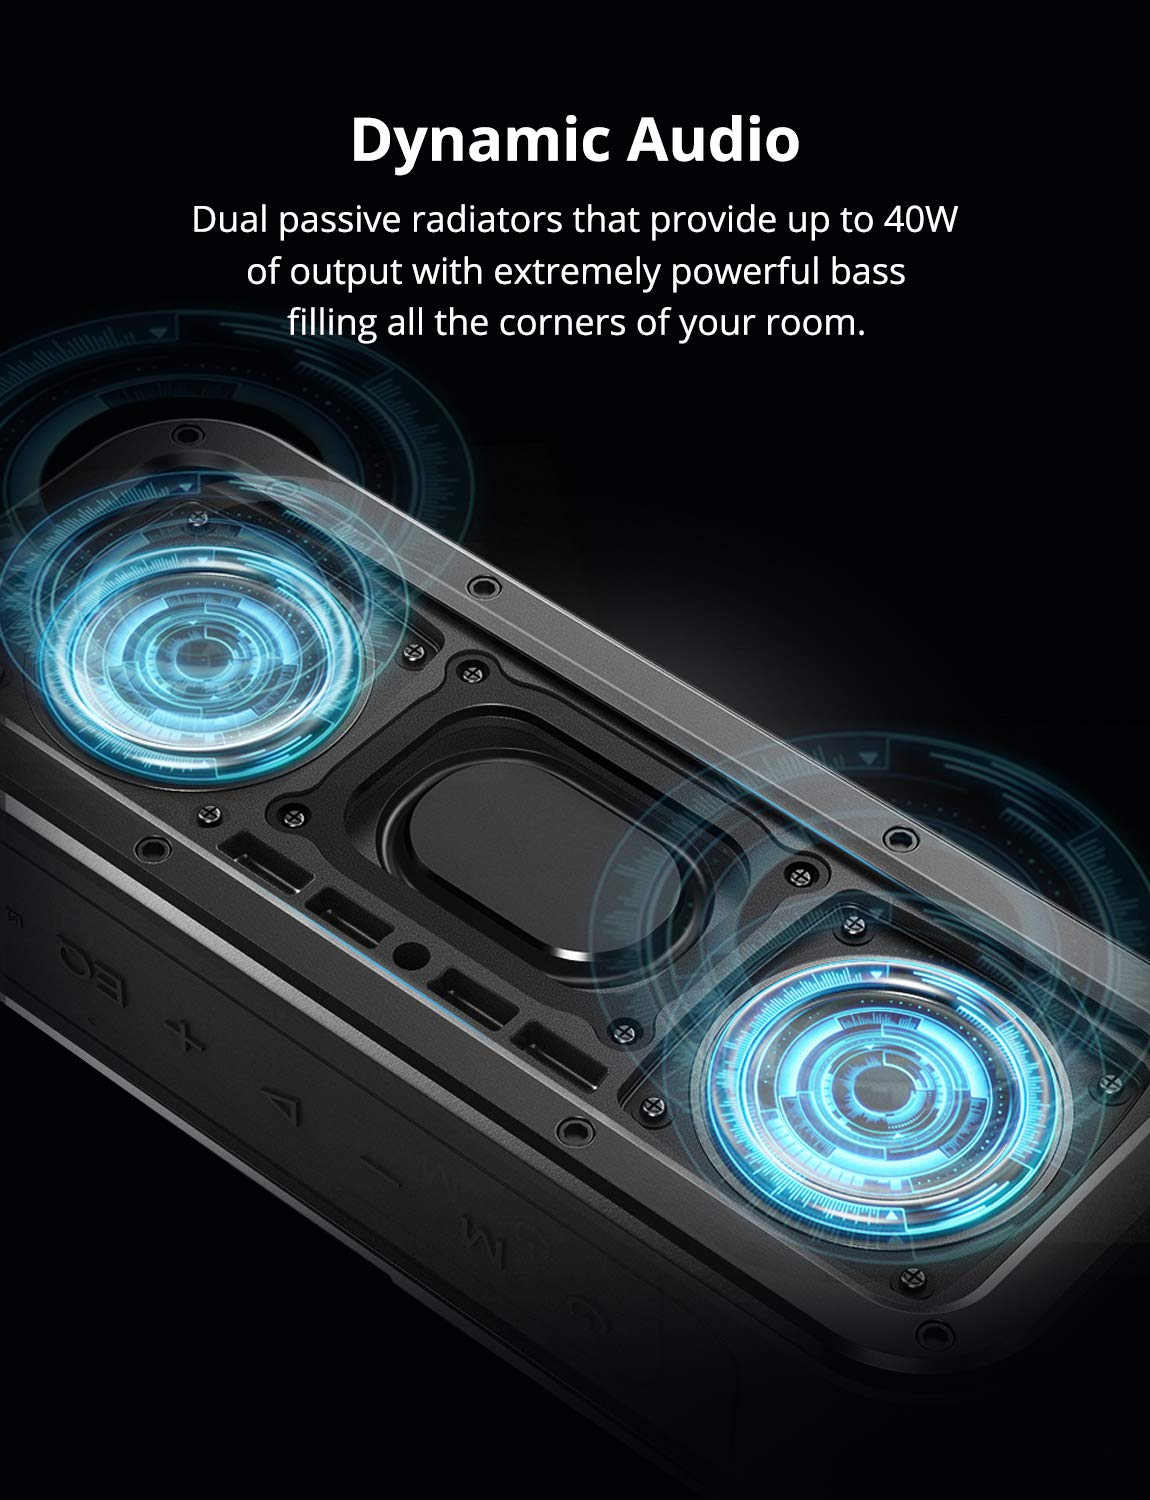 Portable Bluetooth Speakers, Tronsmart Force SoundPulse 40W IPX7 Waterproof Bluetooth 4.2 Wireless Speakers with 15-Hour Playtime, TWS, Dual-Driver with Built-in Mic, NFC, Deep Bass (Force) by Tronsmart (Image #3)